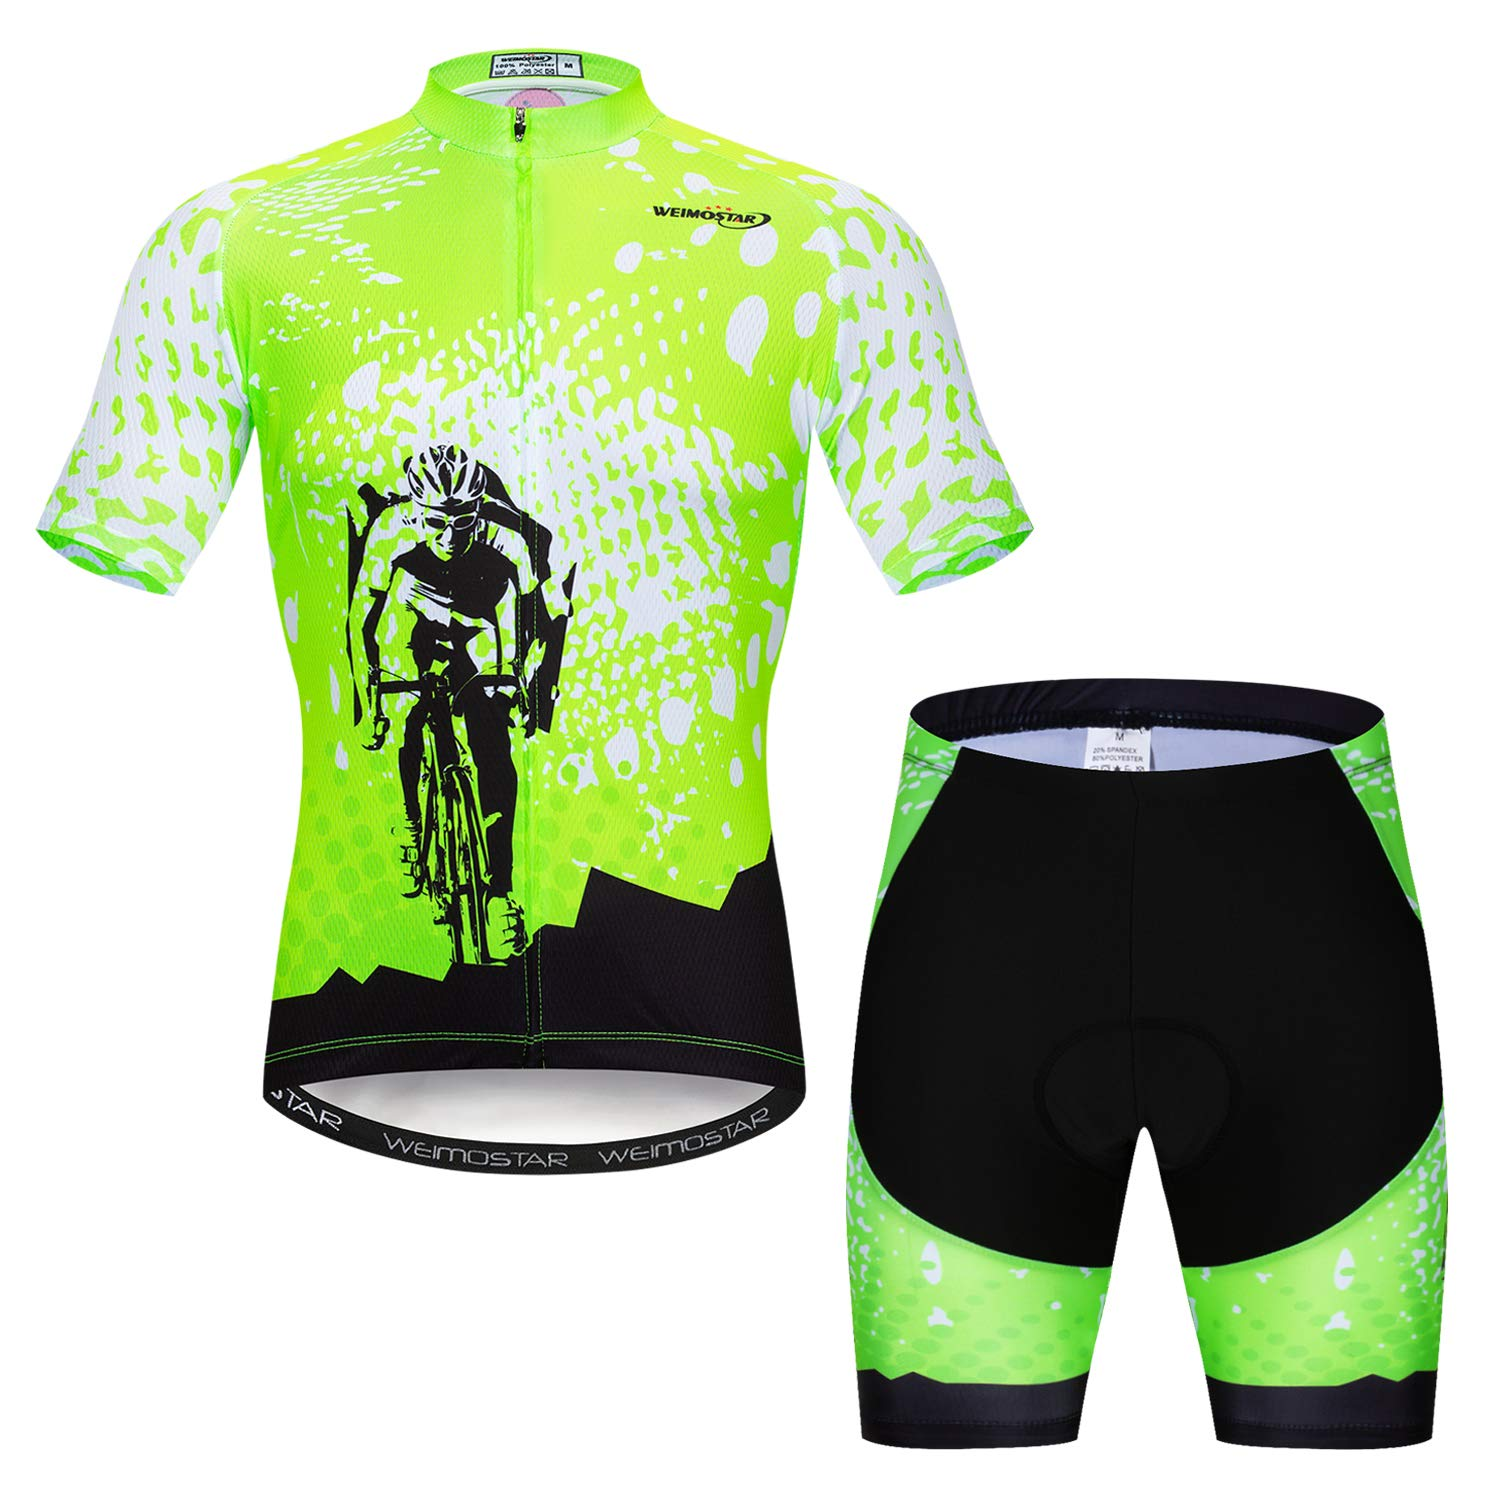 Men's Cycling Jersey Set Road Biking Short Sleeve Kit 4D Gel Padded Bib Shorts Full Zipper Closure Bicycle Clothing Green Quick Dry Breathable Size XL by Xinzechen